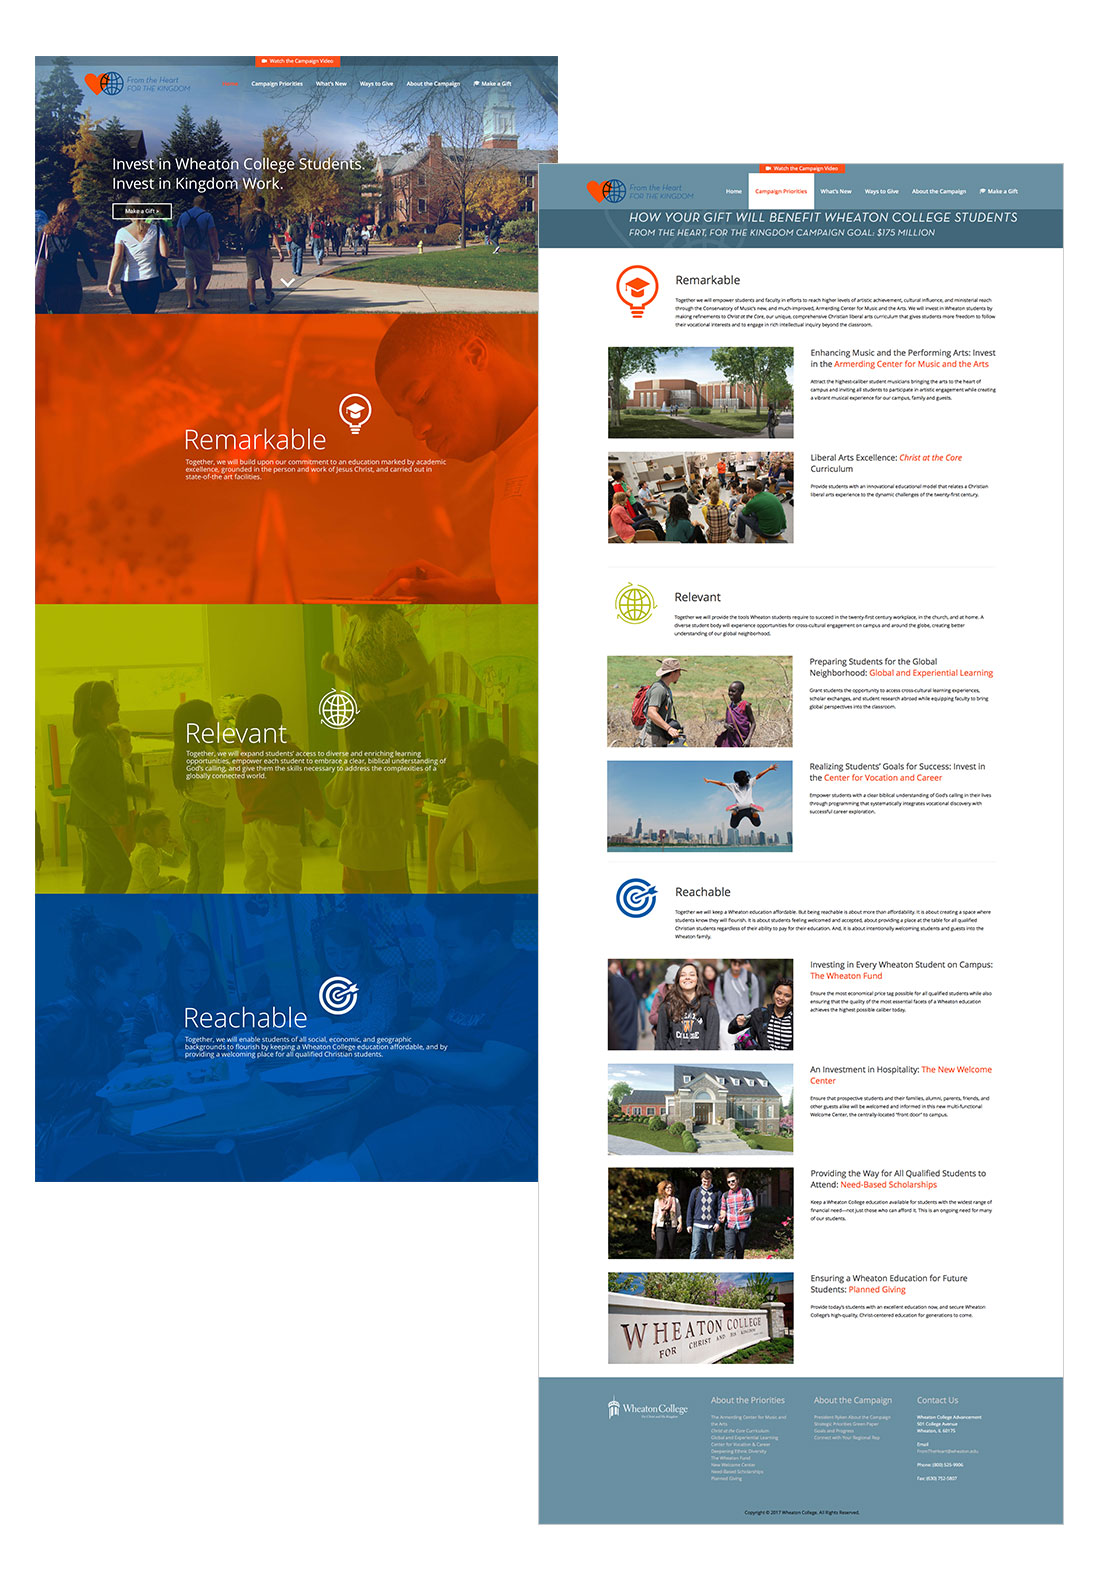 Wheaton College website pages